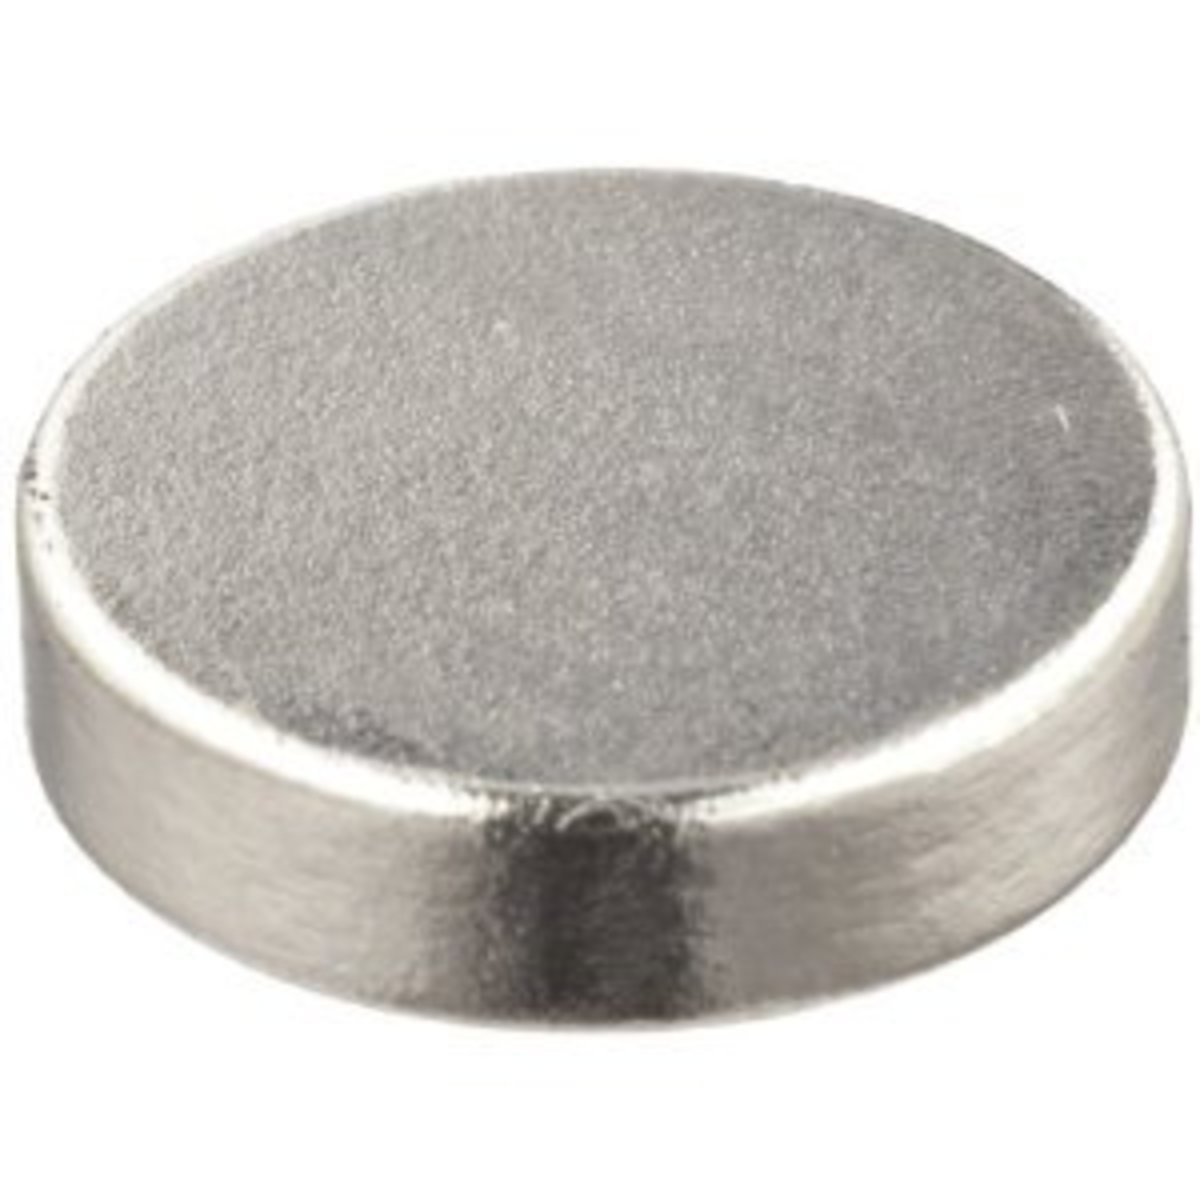 A neodymium magnet (depicted) is one of the strongest and more affordable rare earth magnet types in the world